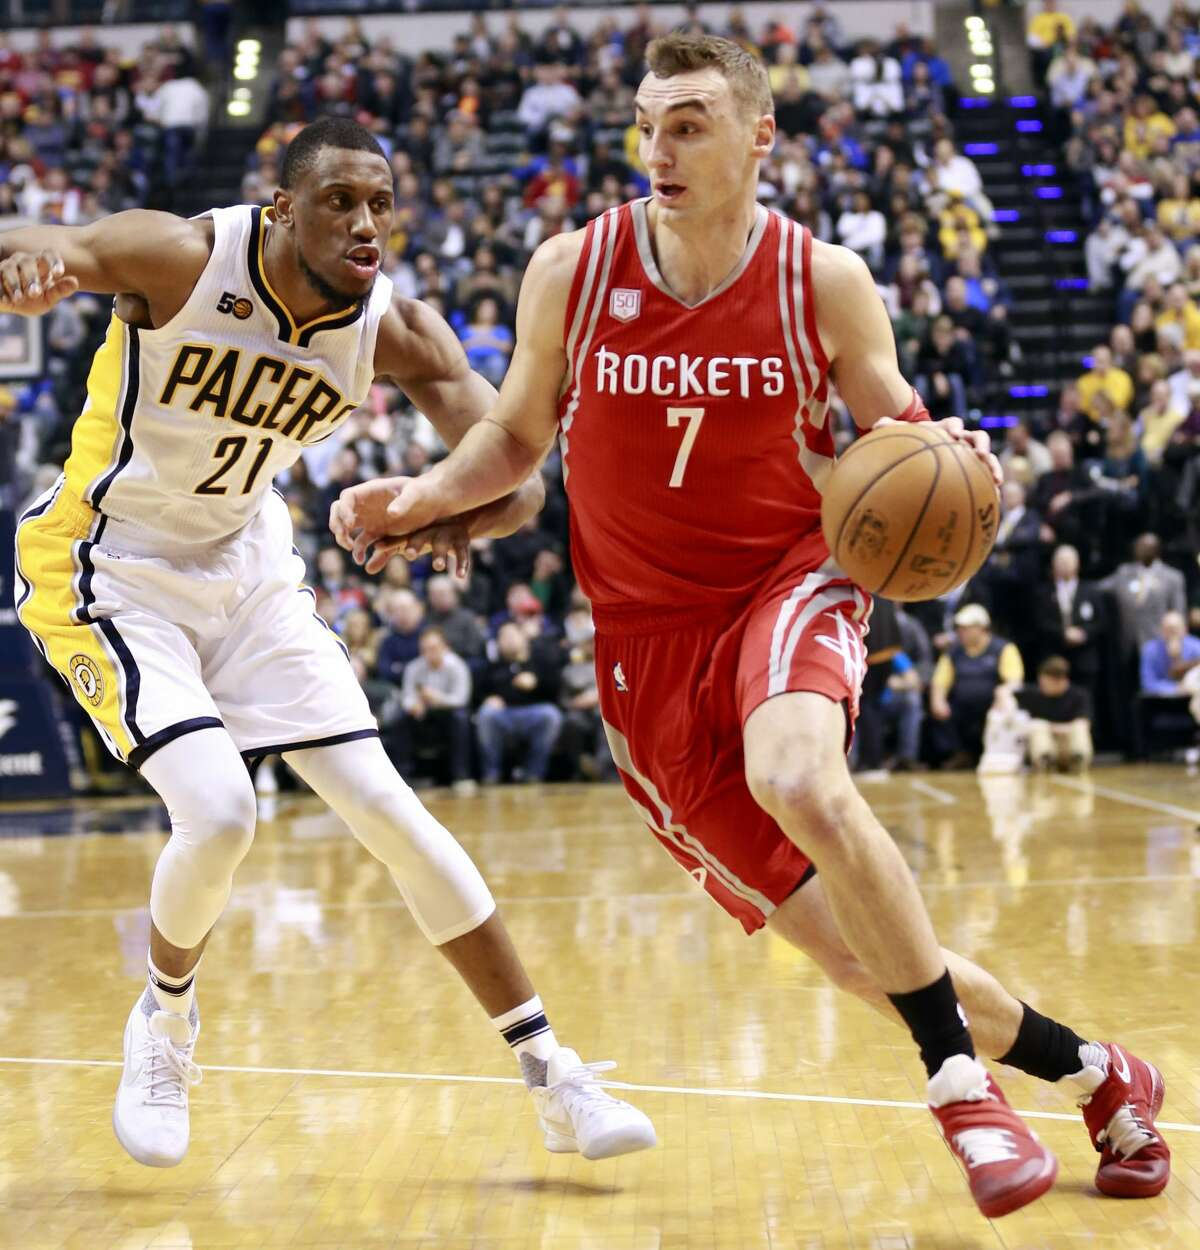 Houston Rockets forward Sam Dekker (7) dribbles around Indiana Pacers forward Thaddeus Young in the first half of an NBA basketball game, Sunday, Jan. 29, 2017, in Indianapolis. Indiana won 120-101. (AP Photo/R Brent Smith)